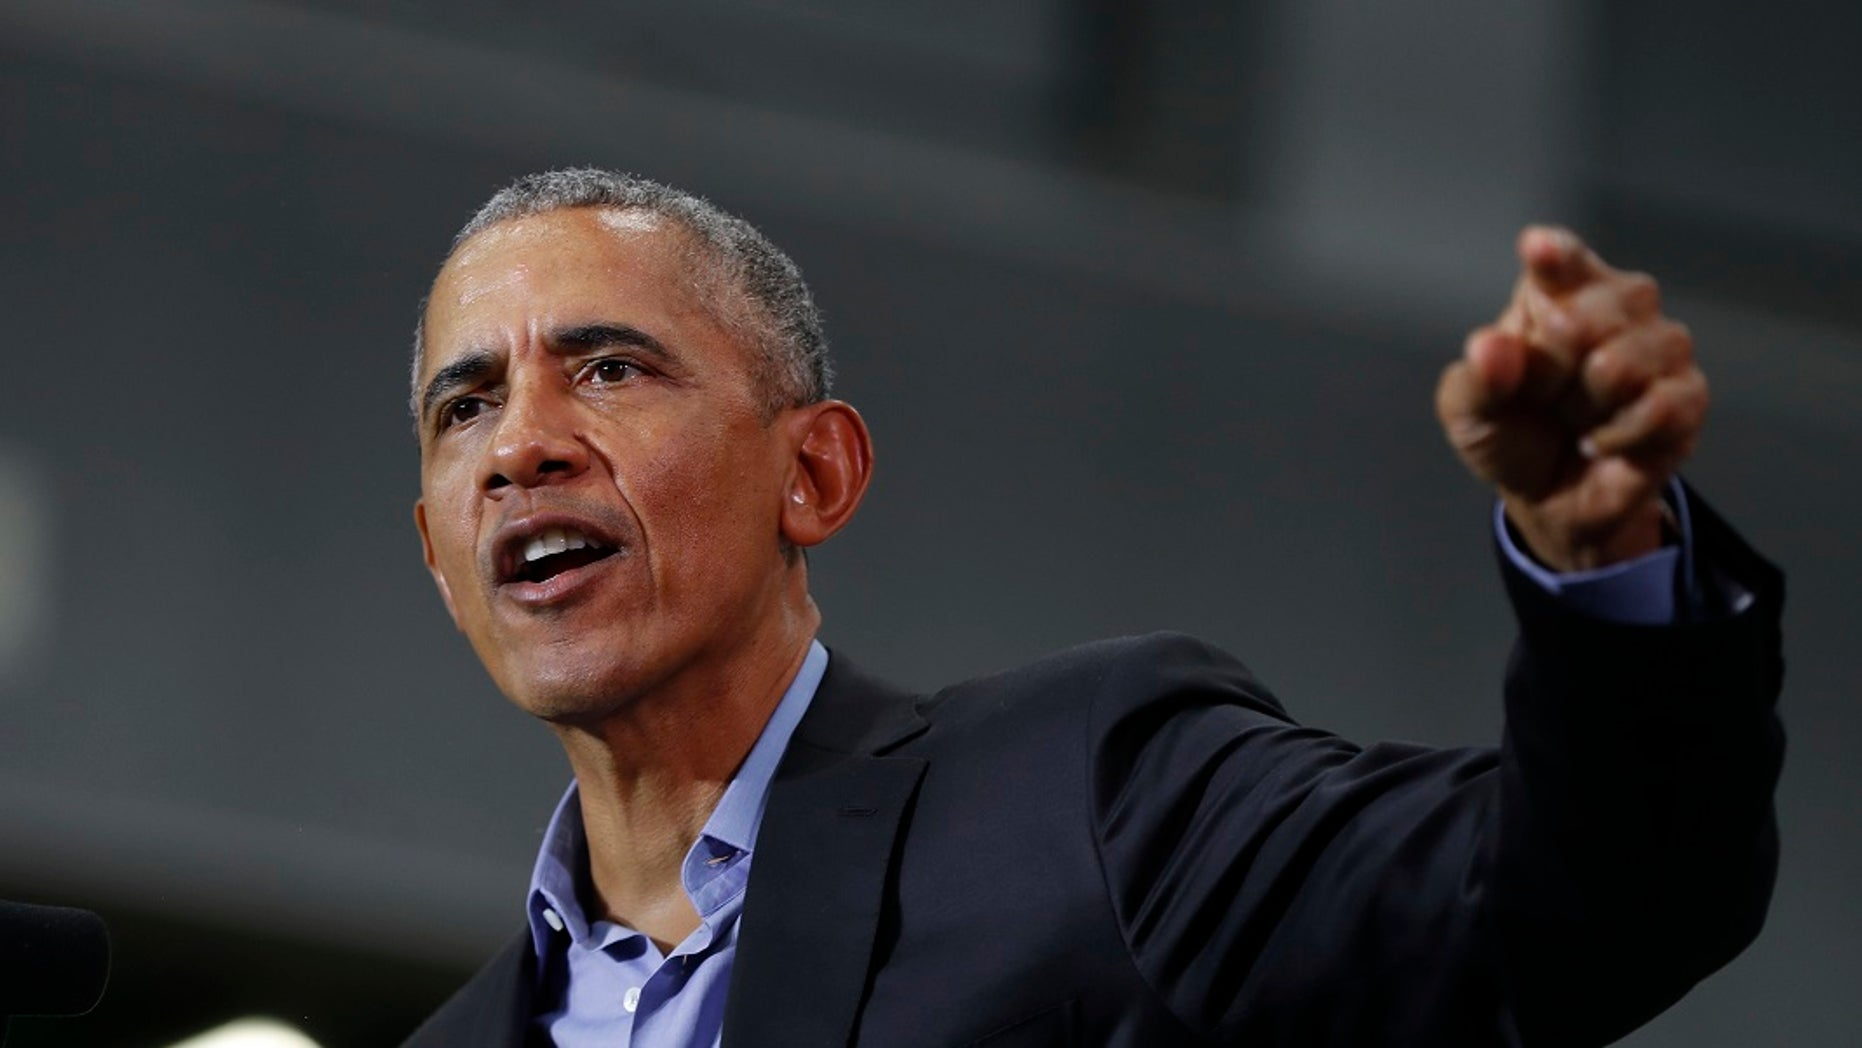 Former President Barack Obama speaks during a rally in Detroit on Friday.